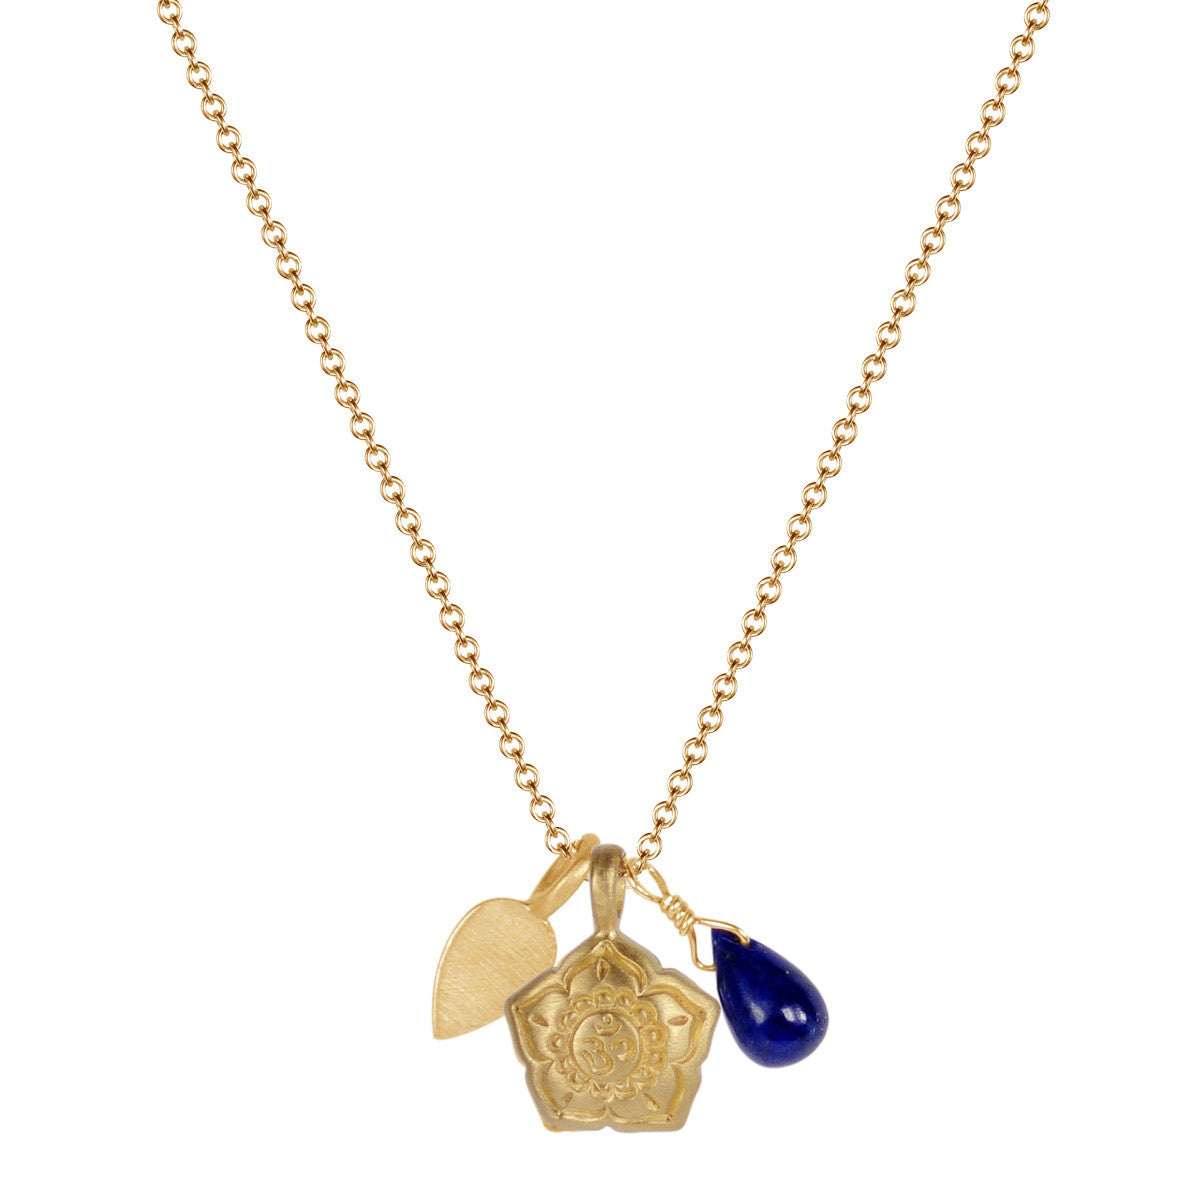 10K Gold Om Flower Trinket Pendant with Lapis